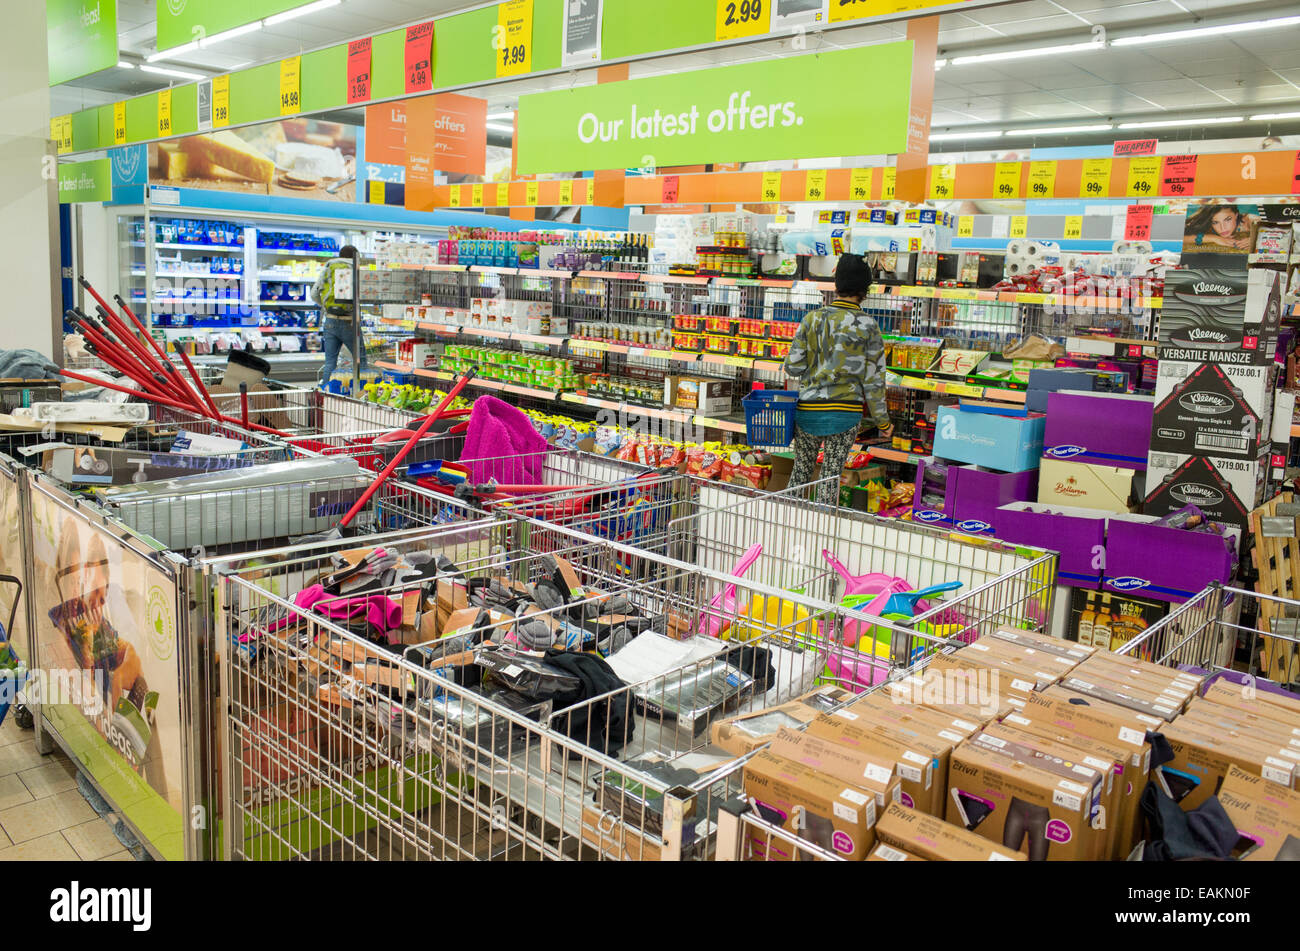 Lidl supermarket, London, England, UK - Stock Image